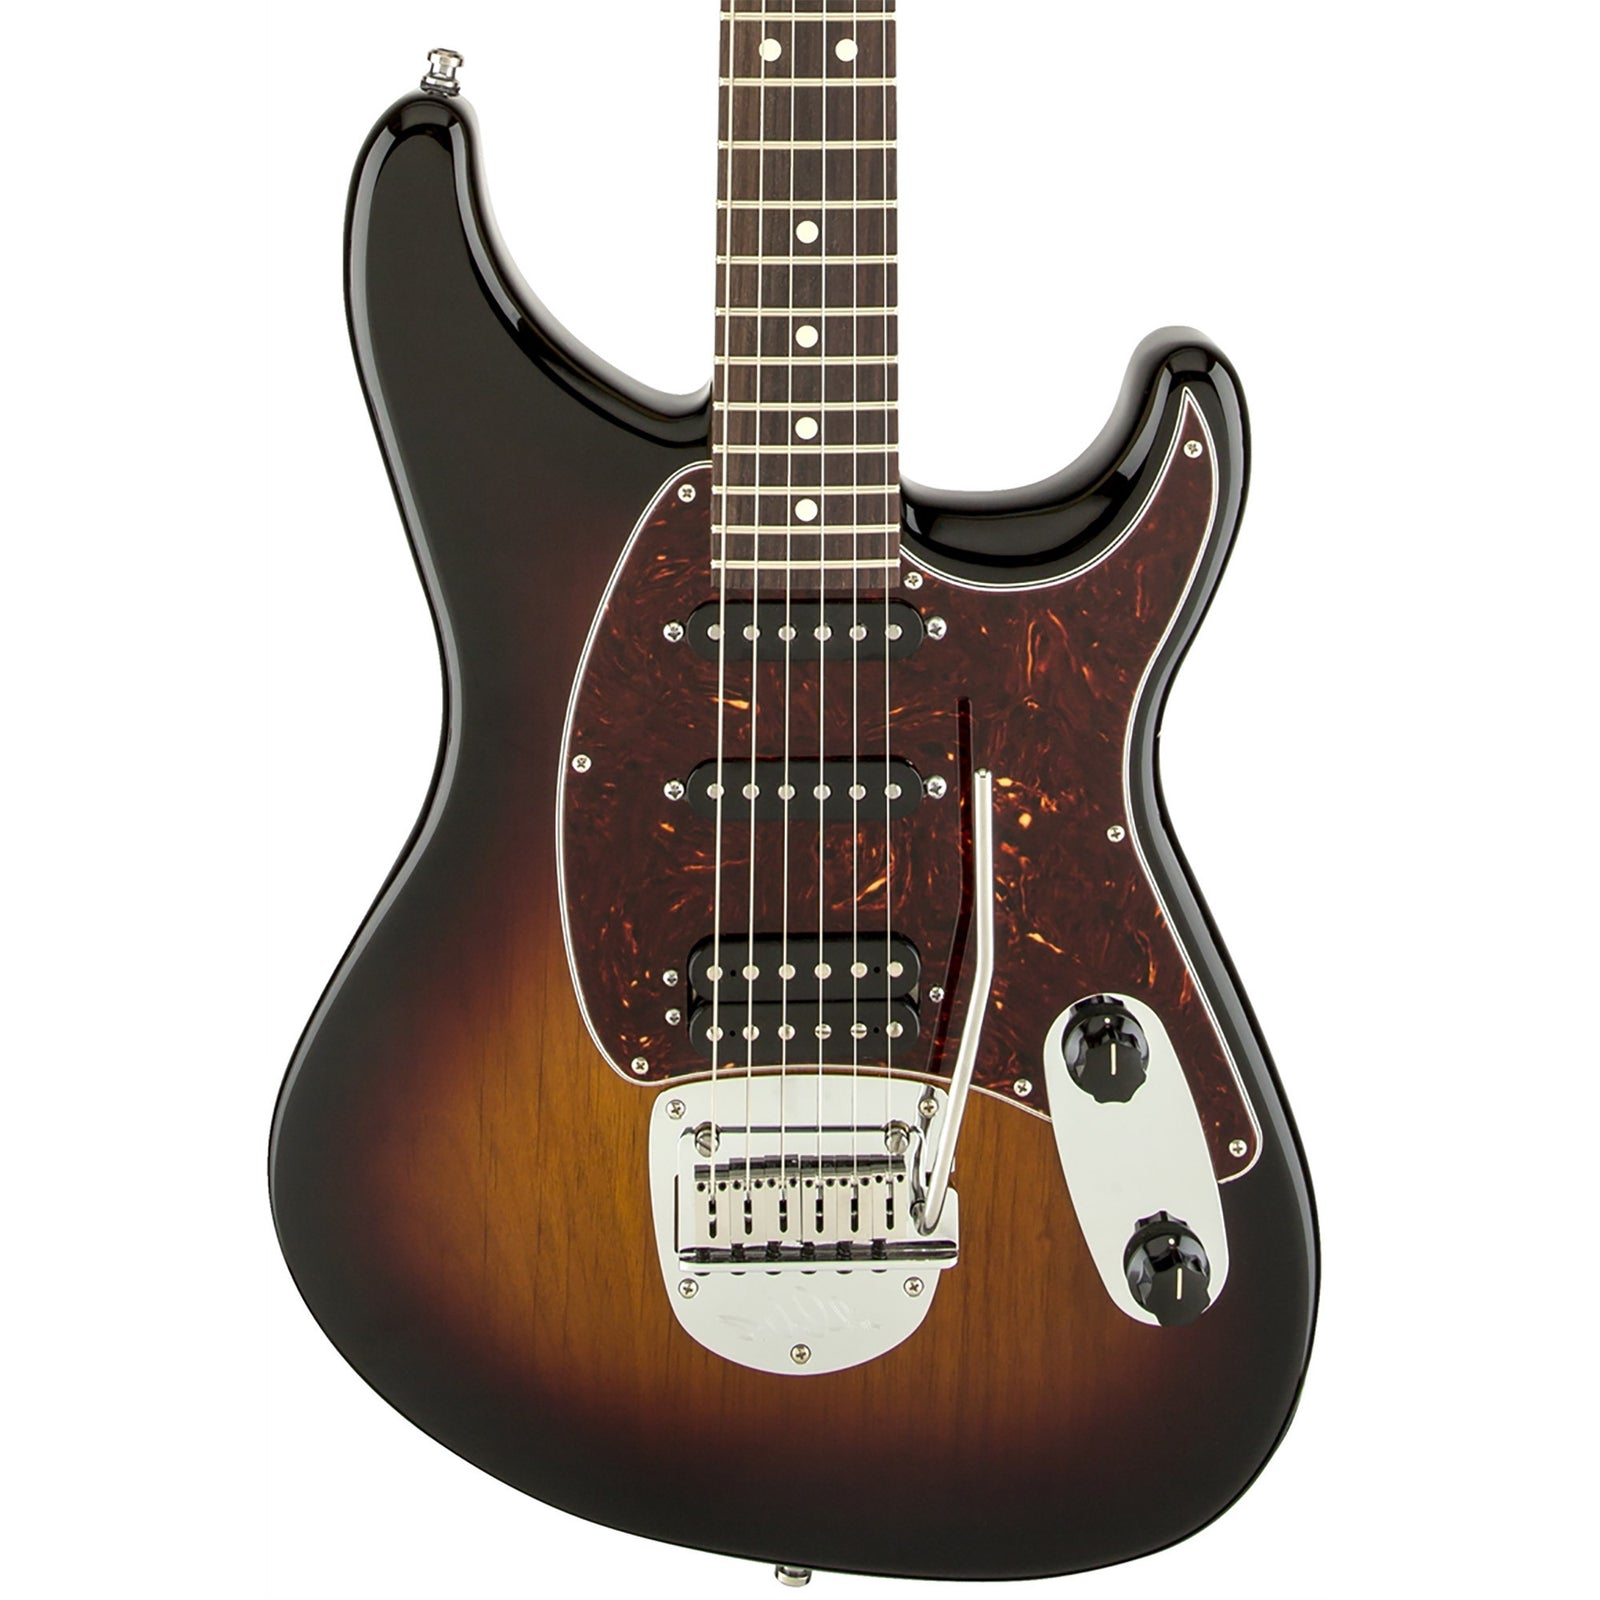 Fender Sergio Vallin Signature Guitar - Rosewood Fingerboard - 3-Color Sunburst